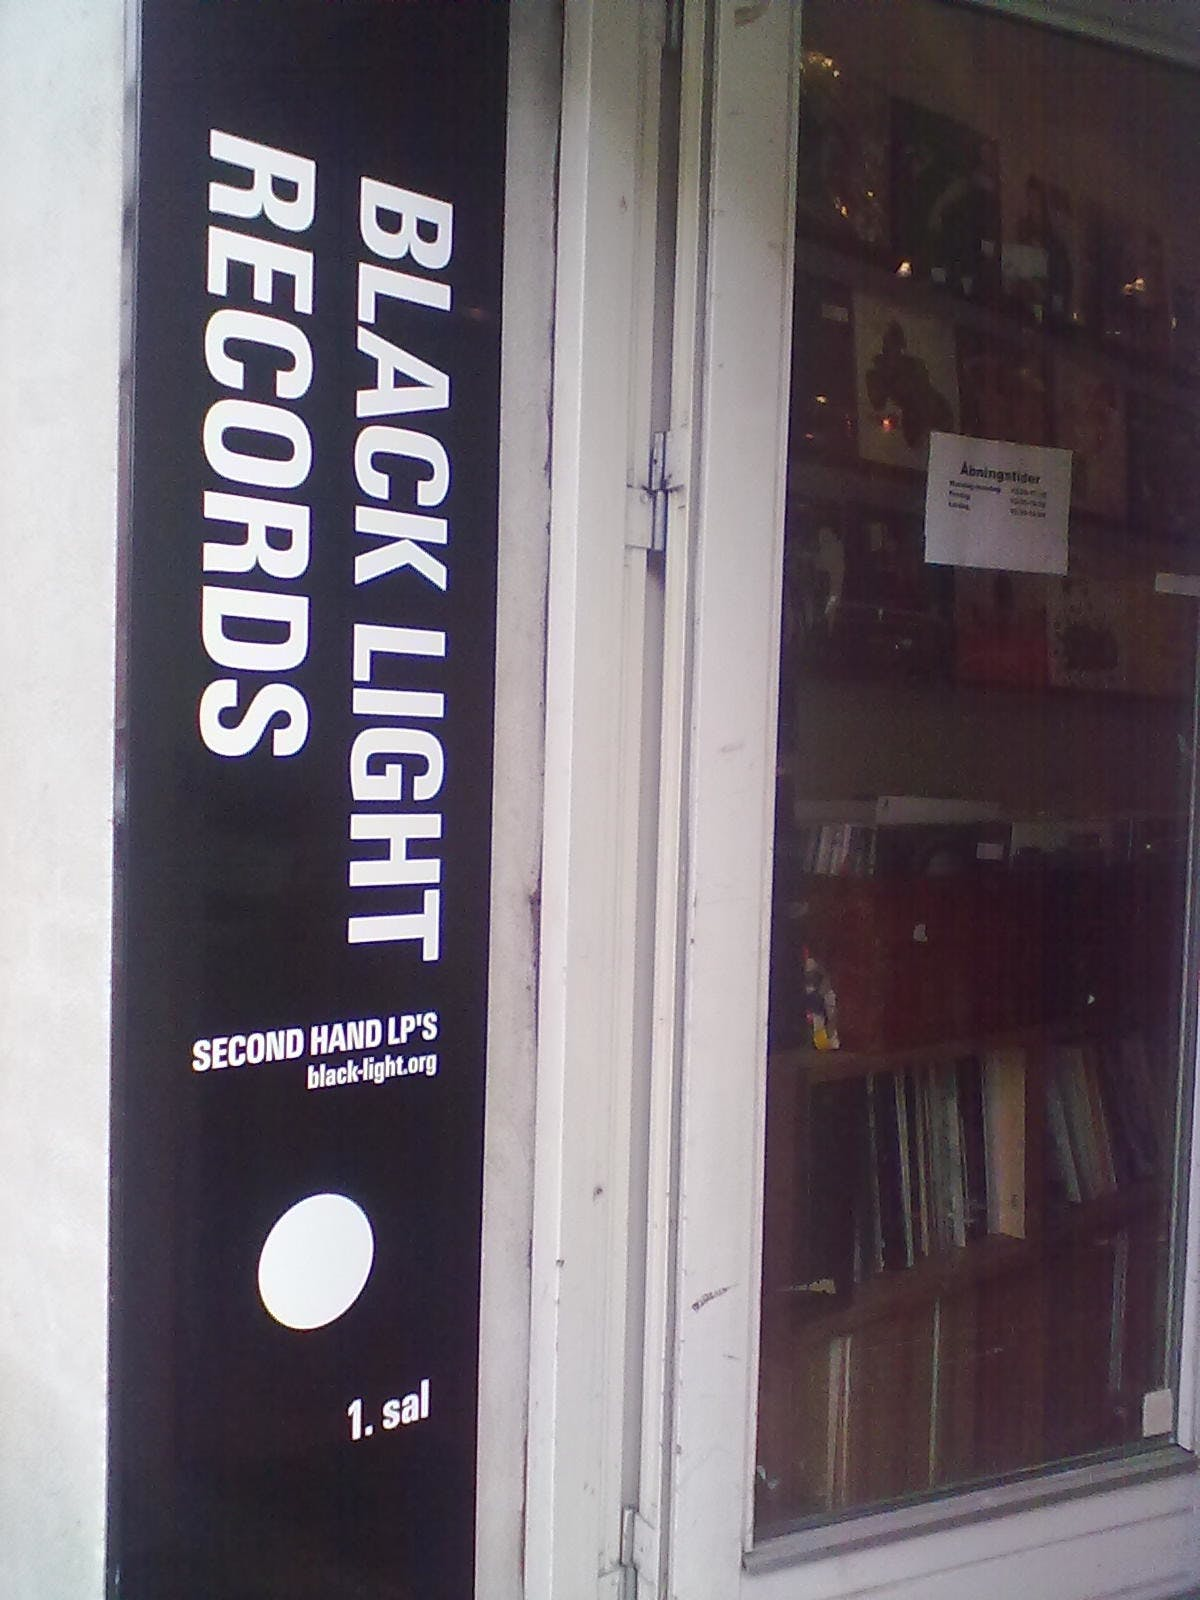 Black Light Records - Record Store Image